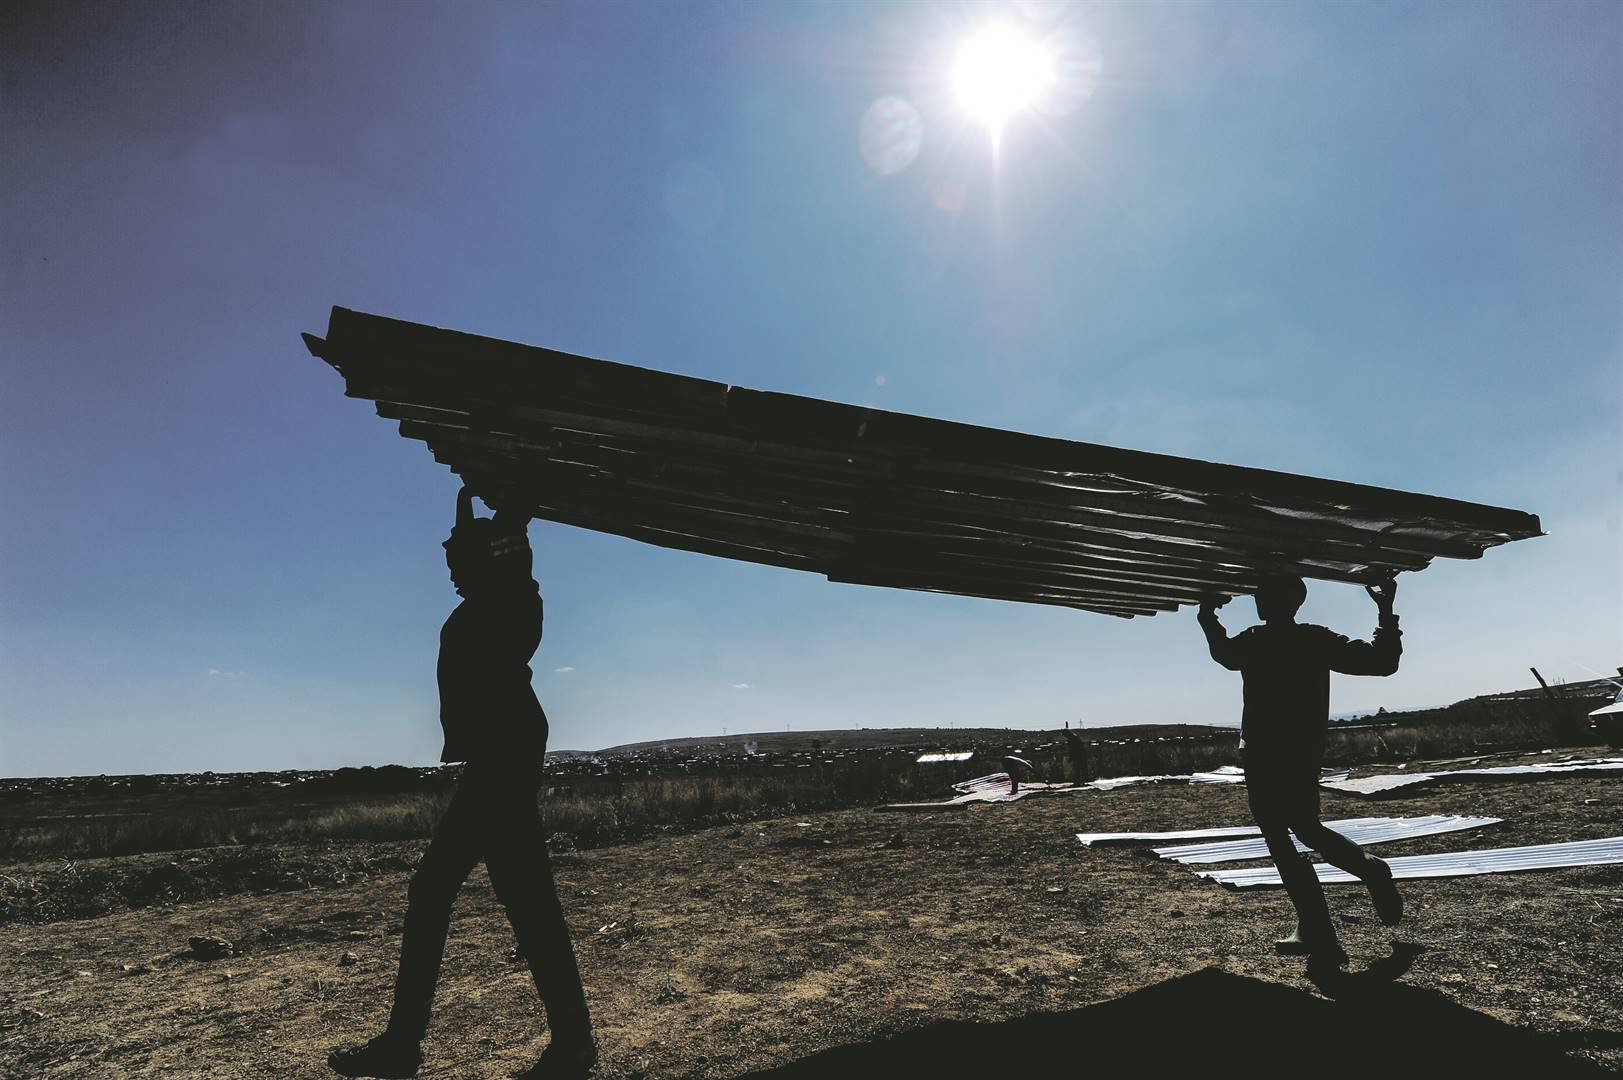 Residents of Lakeside View informal settlement in Lawley, south of Johannesburg, carry corrugated iron sheets to rebuild their shacks after they were demolished by the Red Ants. Picture: Rosetta Msimango